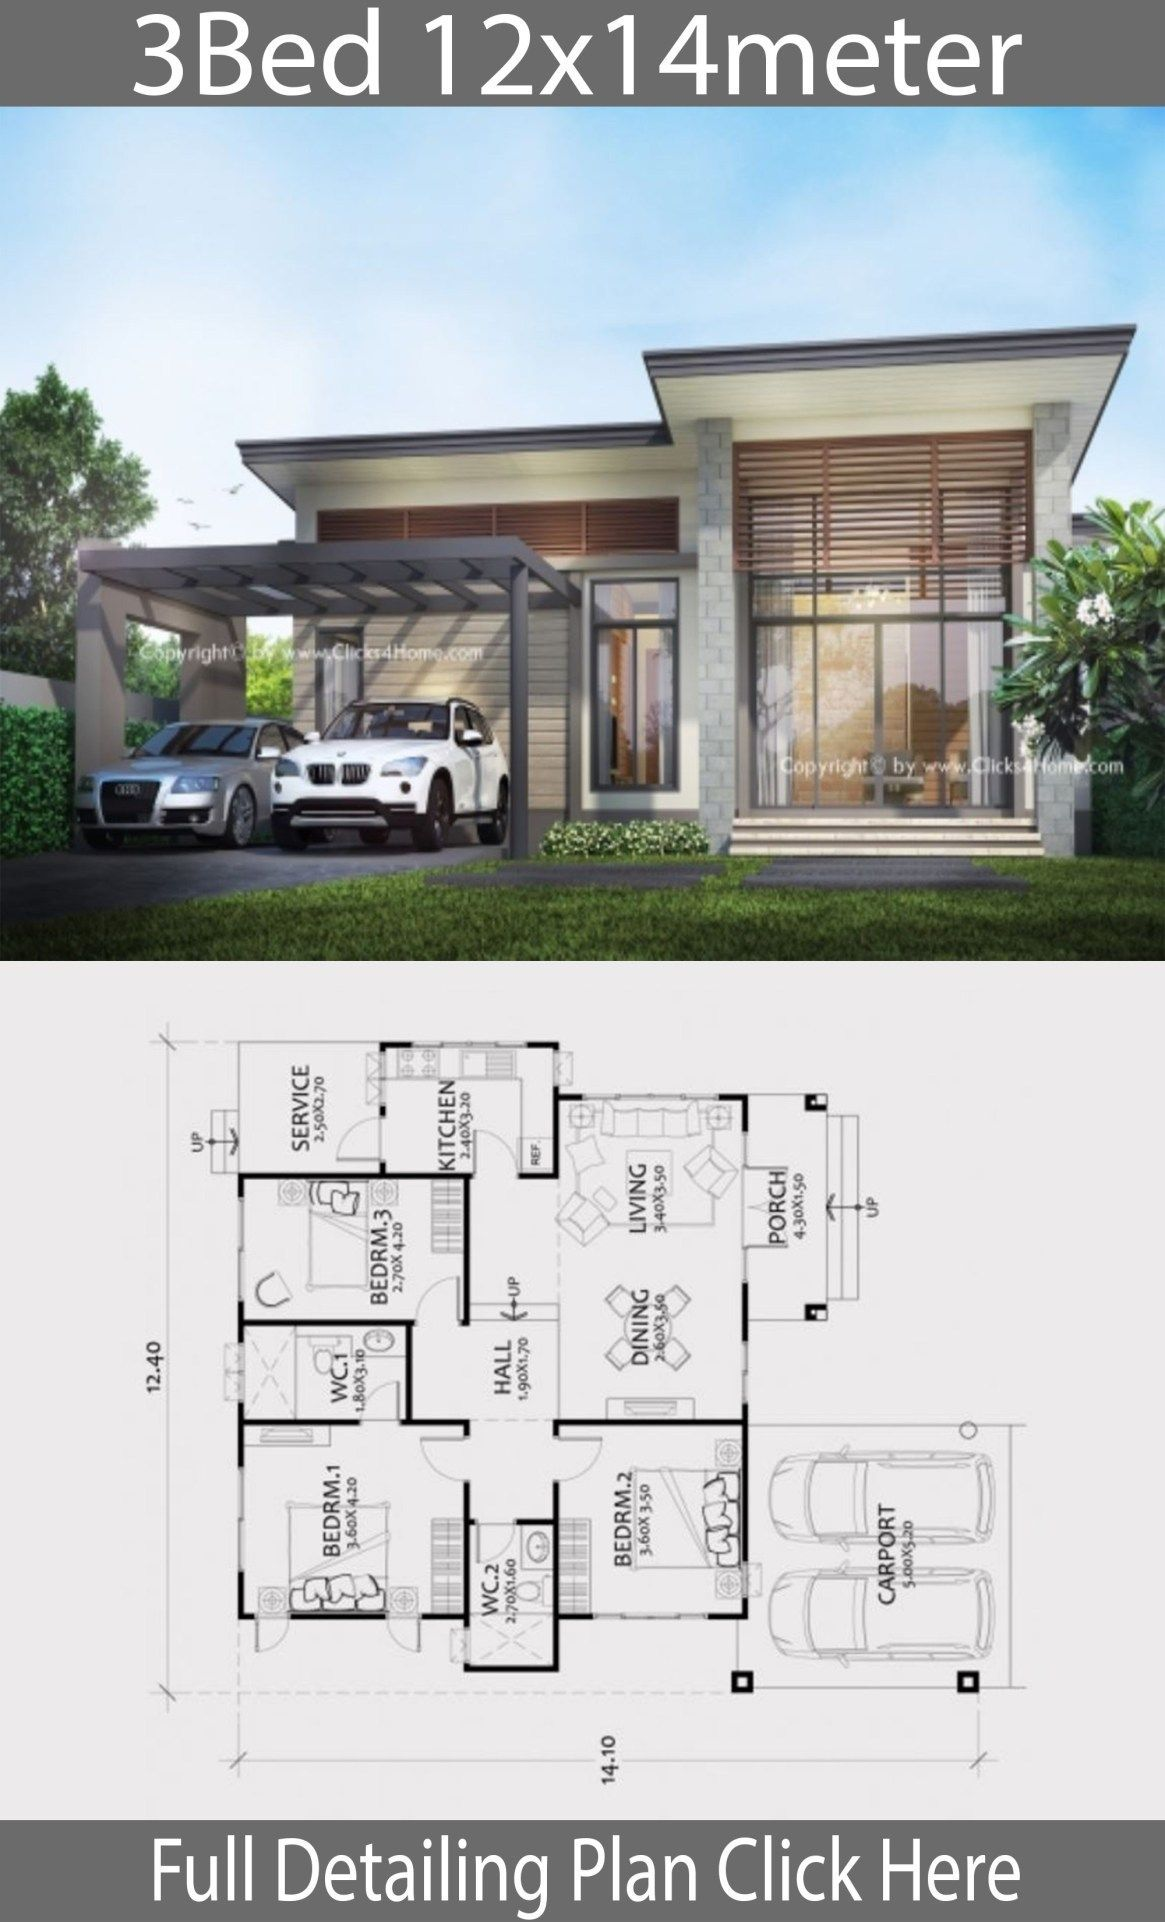 Home Design Plan 12x14m With 3 Bedrooms Home Design With Plansearch Wohnung Hausdekoration Small Modern House Plans Model House Plan Modern Bungalow House